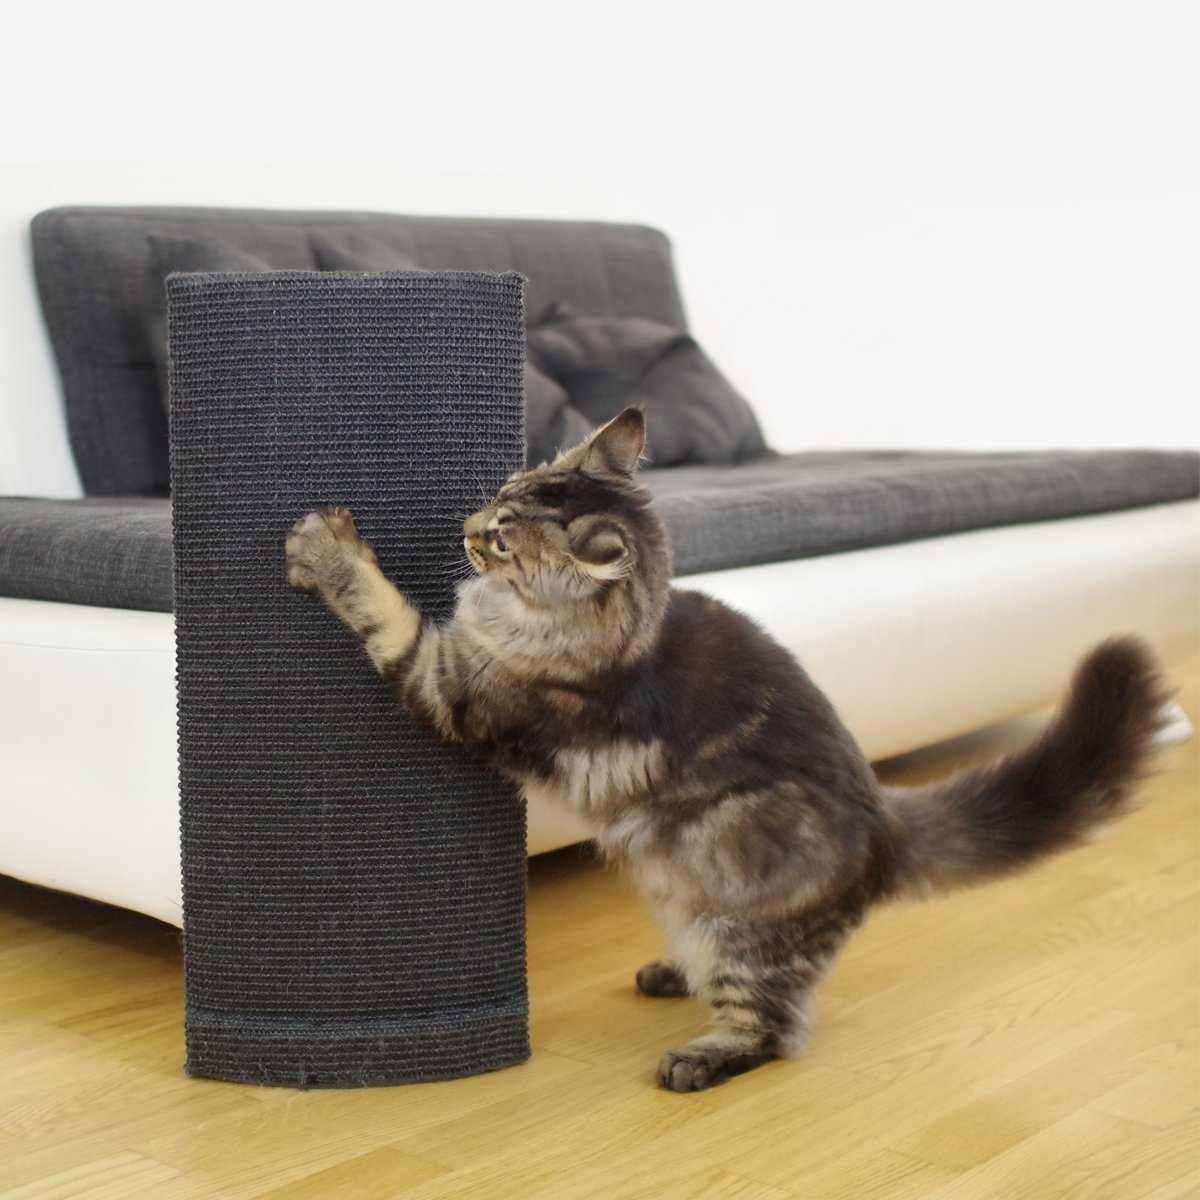 CatTrees Sisal Cat Scratching Post & Couch-Corner Protector